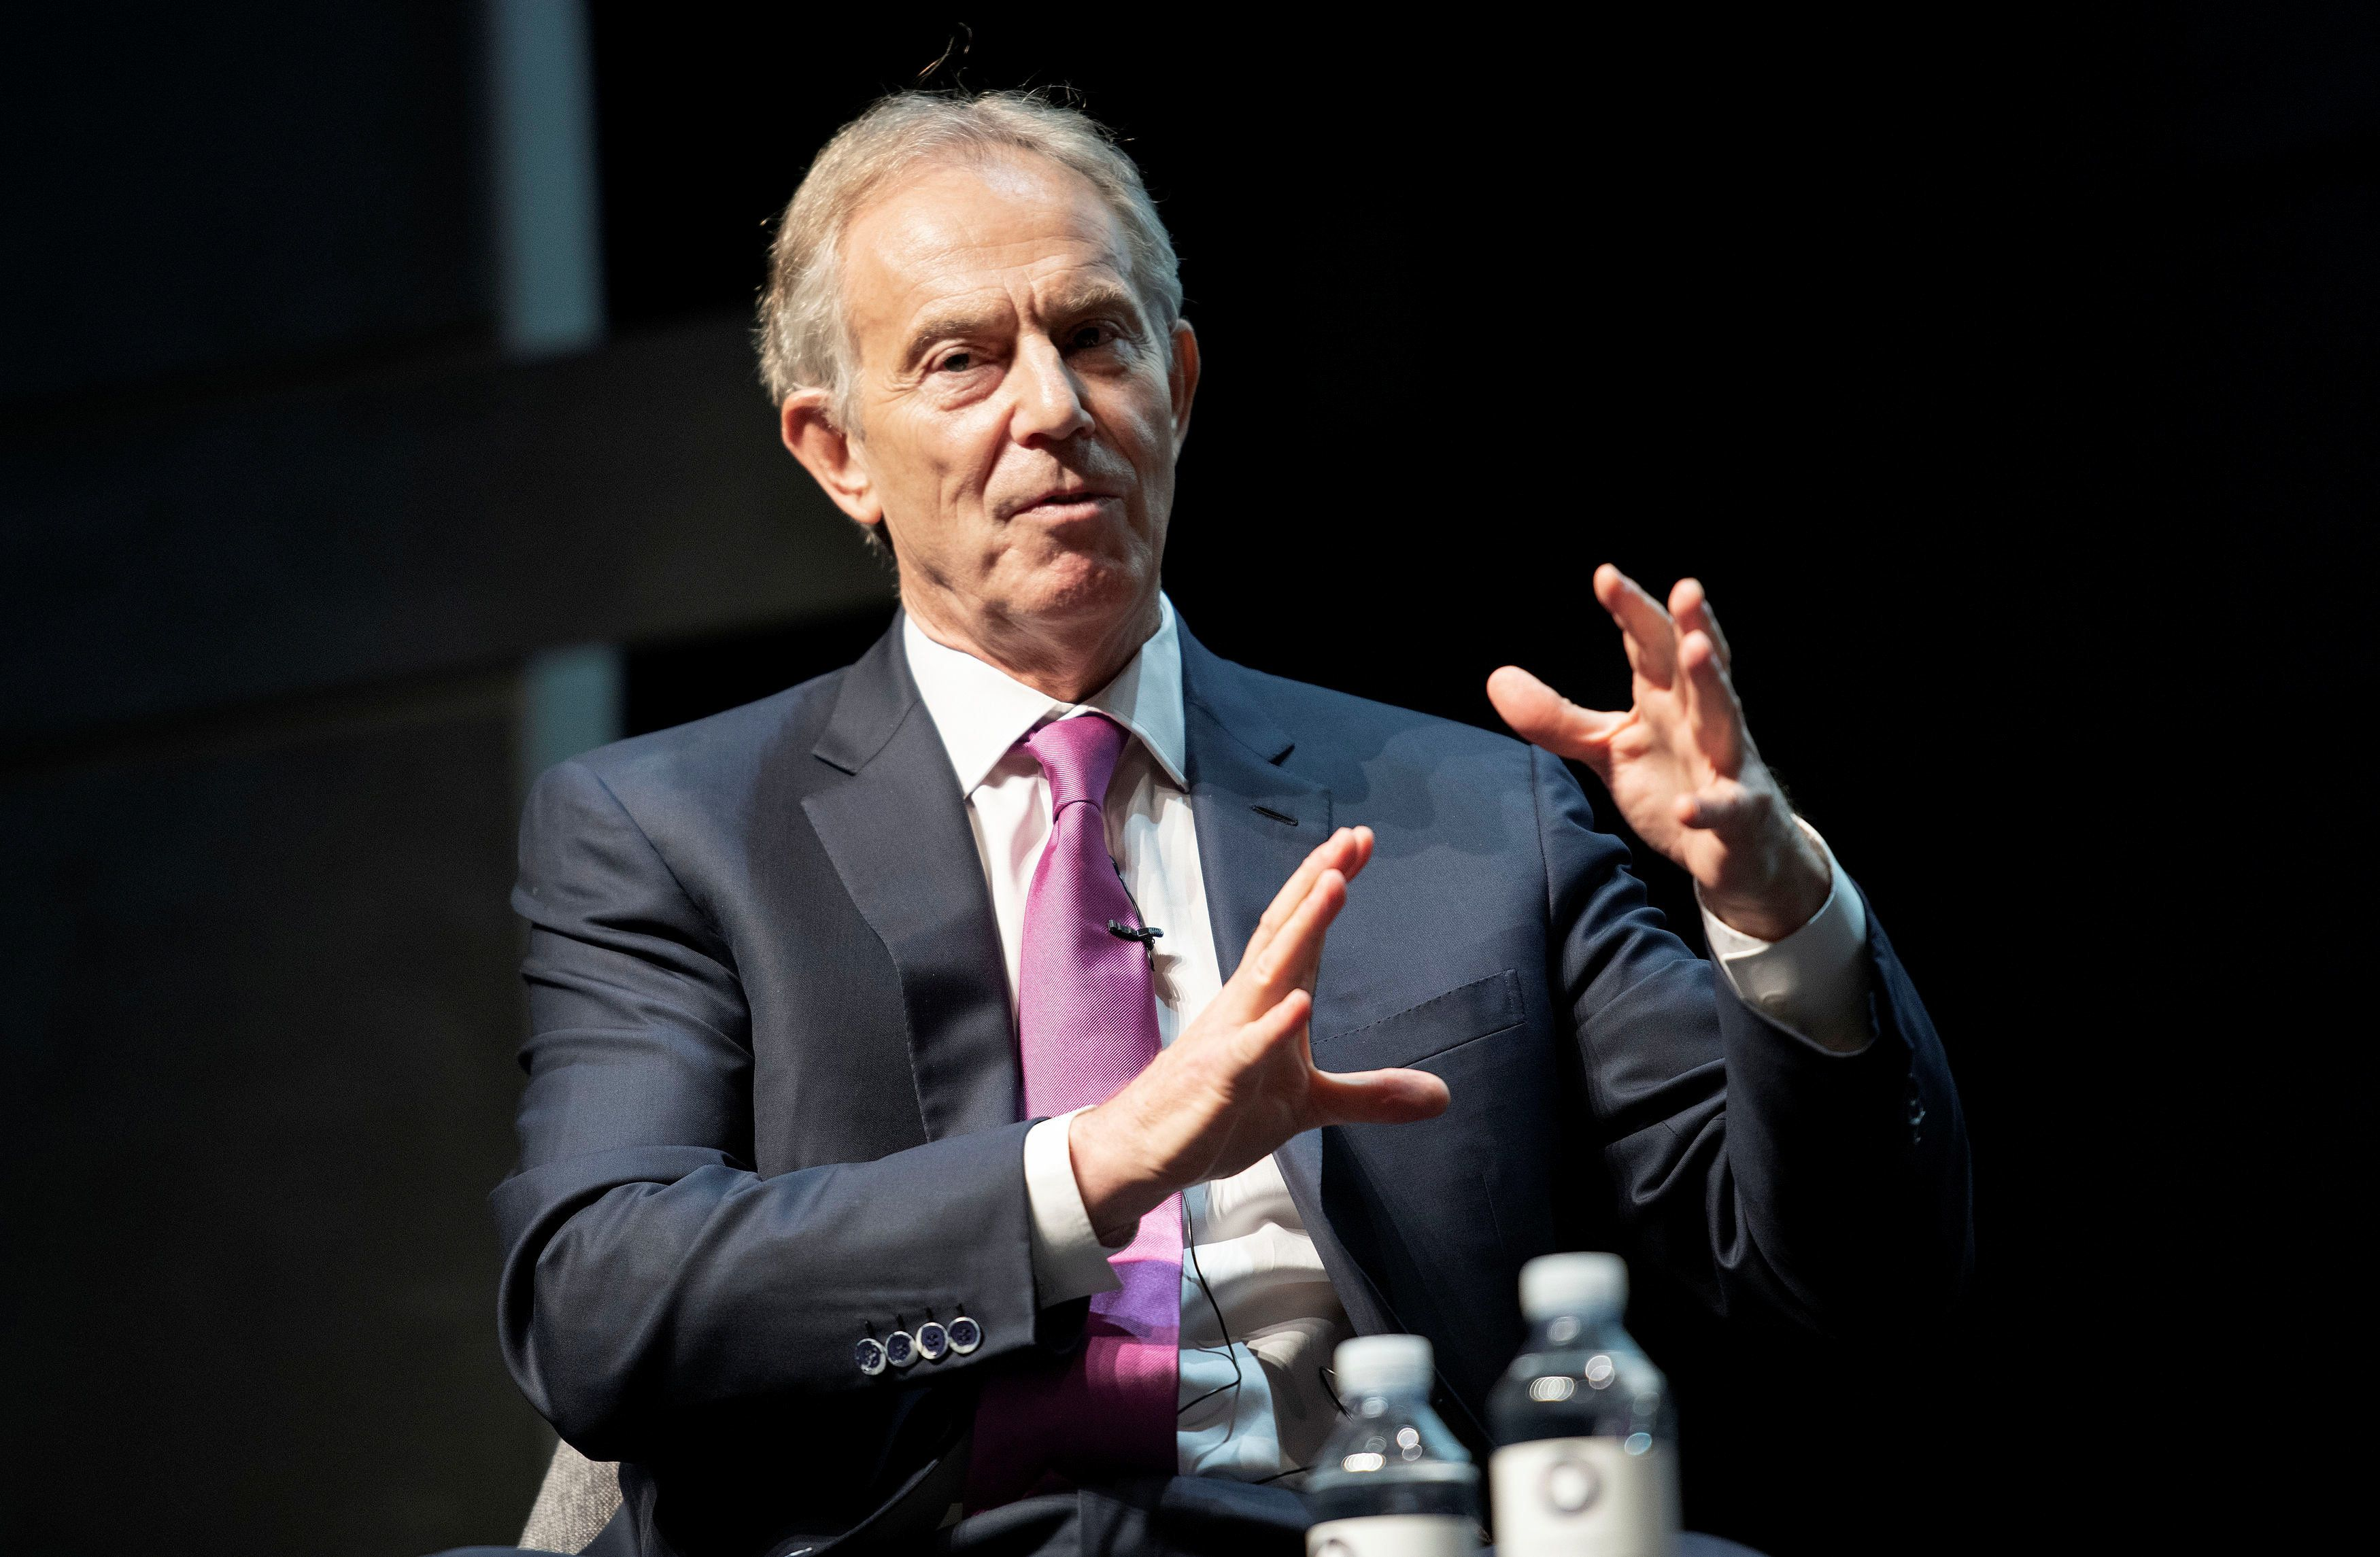 Tony Blair Calls On EU To Step In And Help Brexit Impasse By Making 'Us An